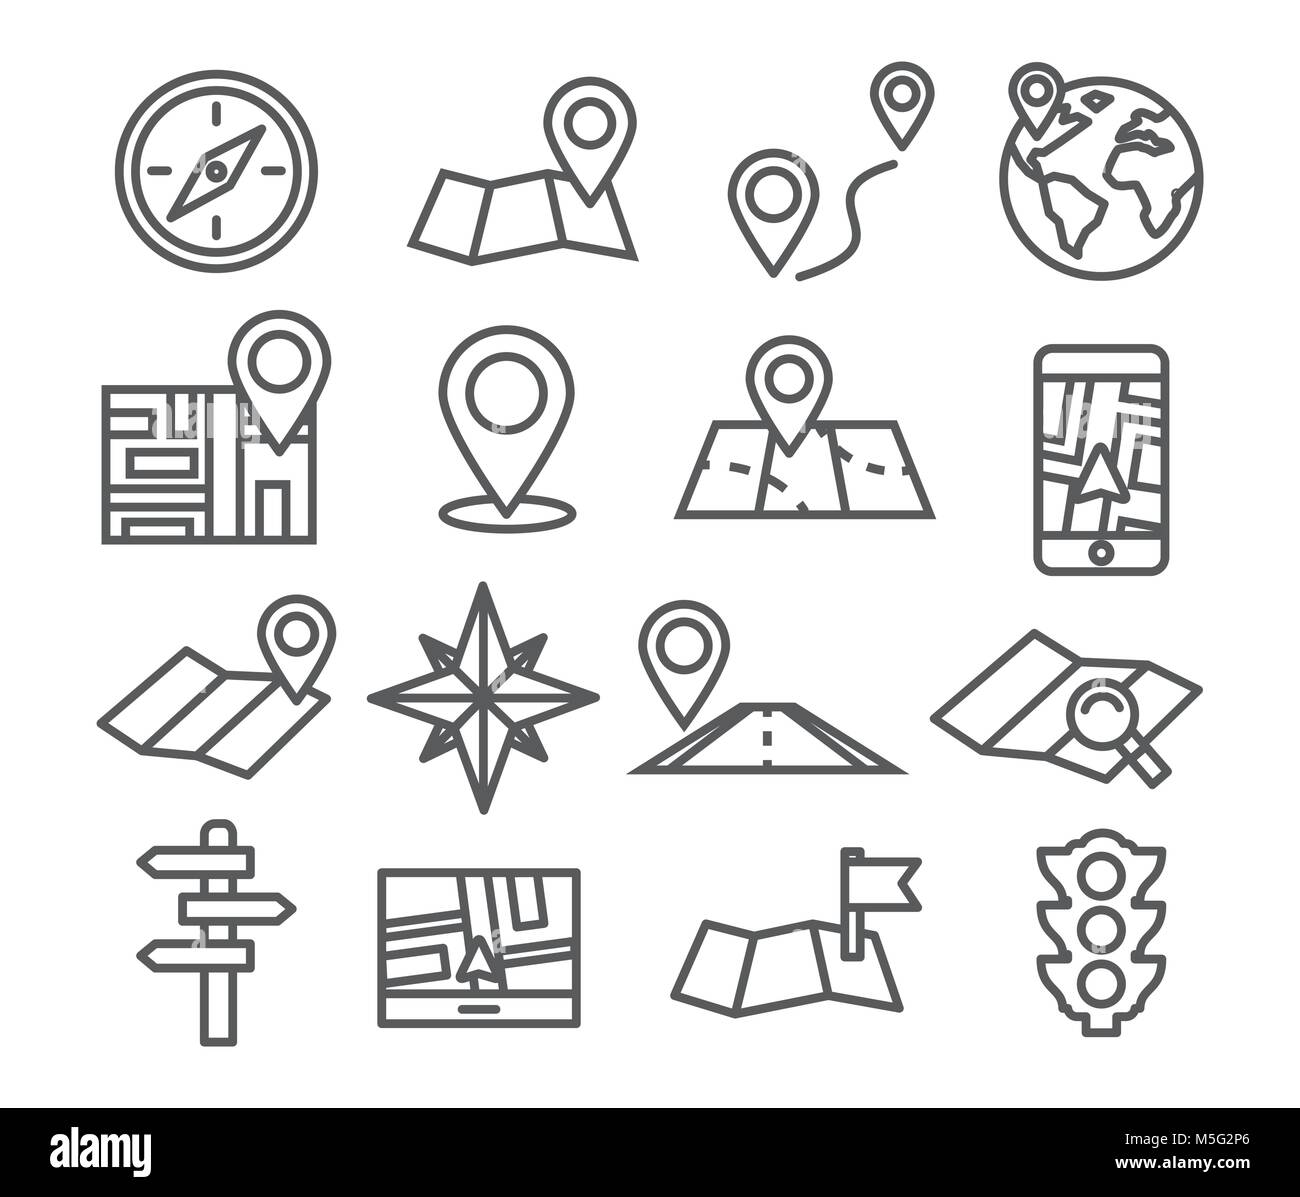 Navigation and Map line icons - Stock Vector